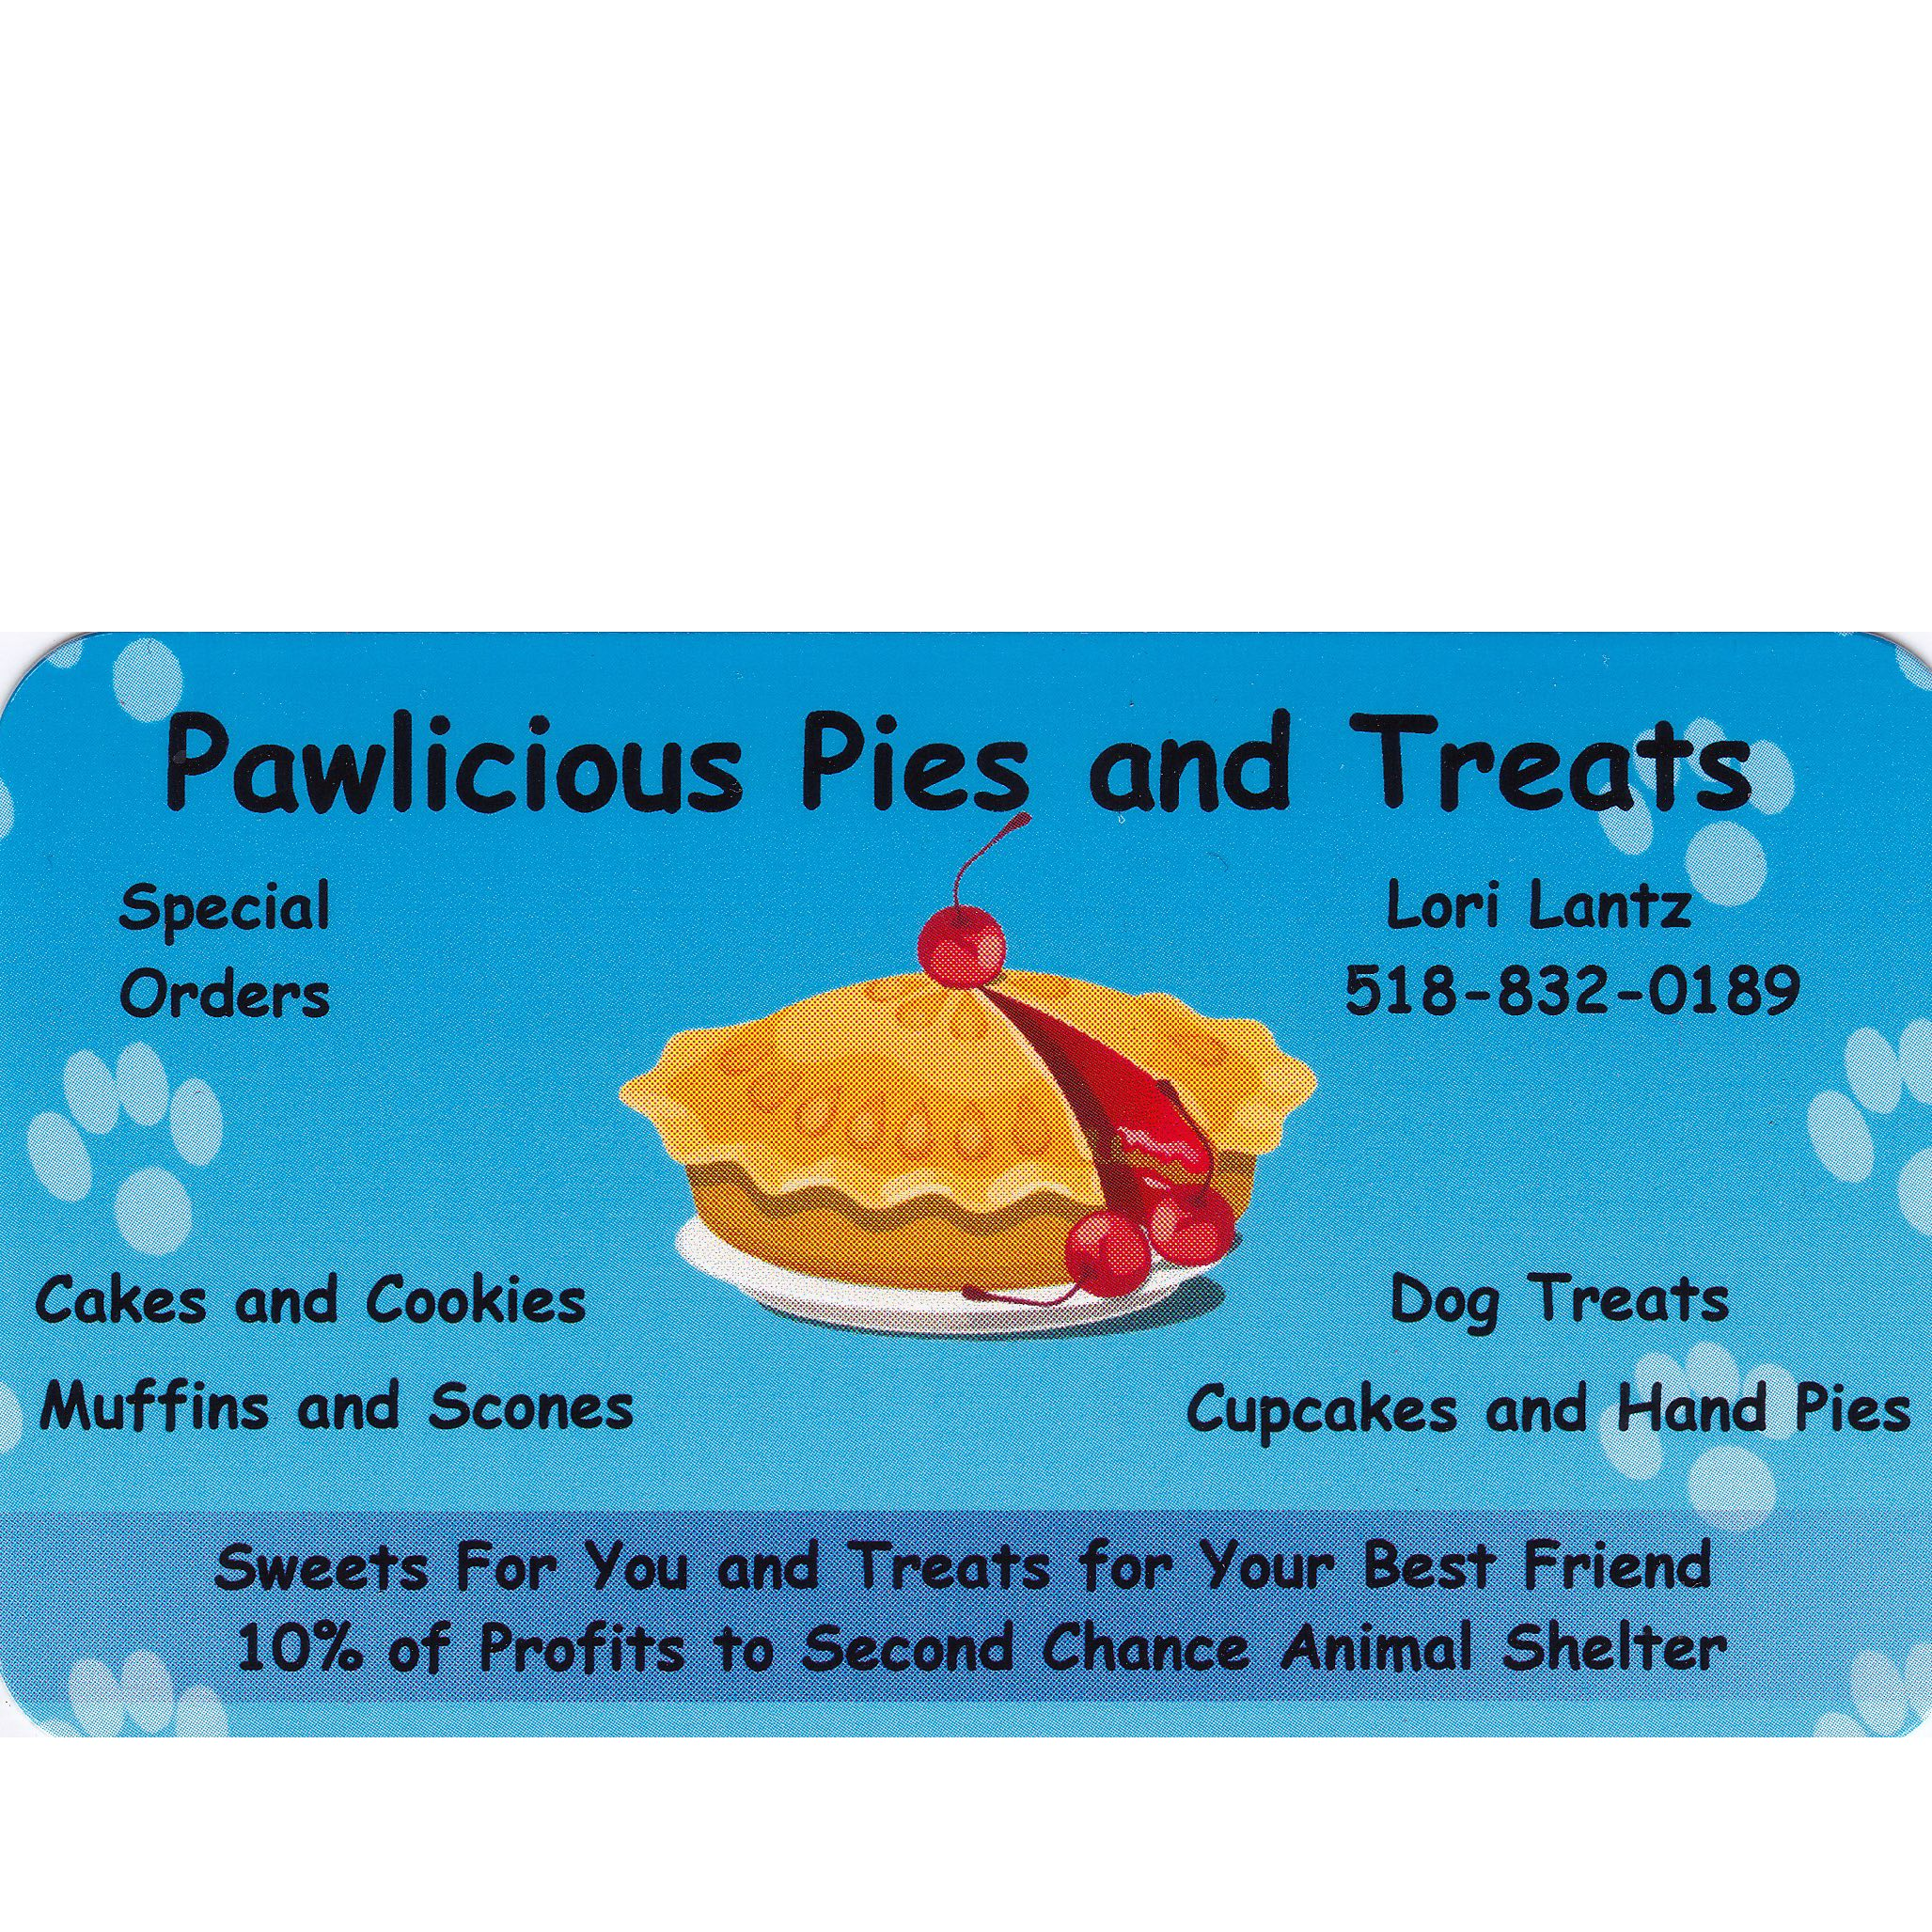 Pawlicious Pies and Treats